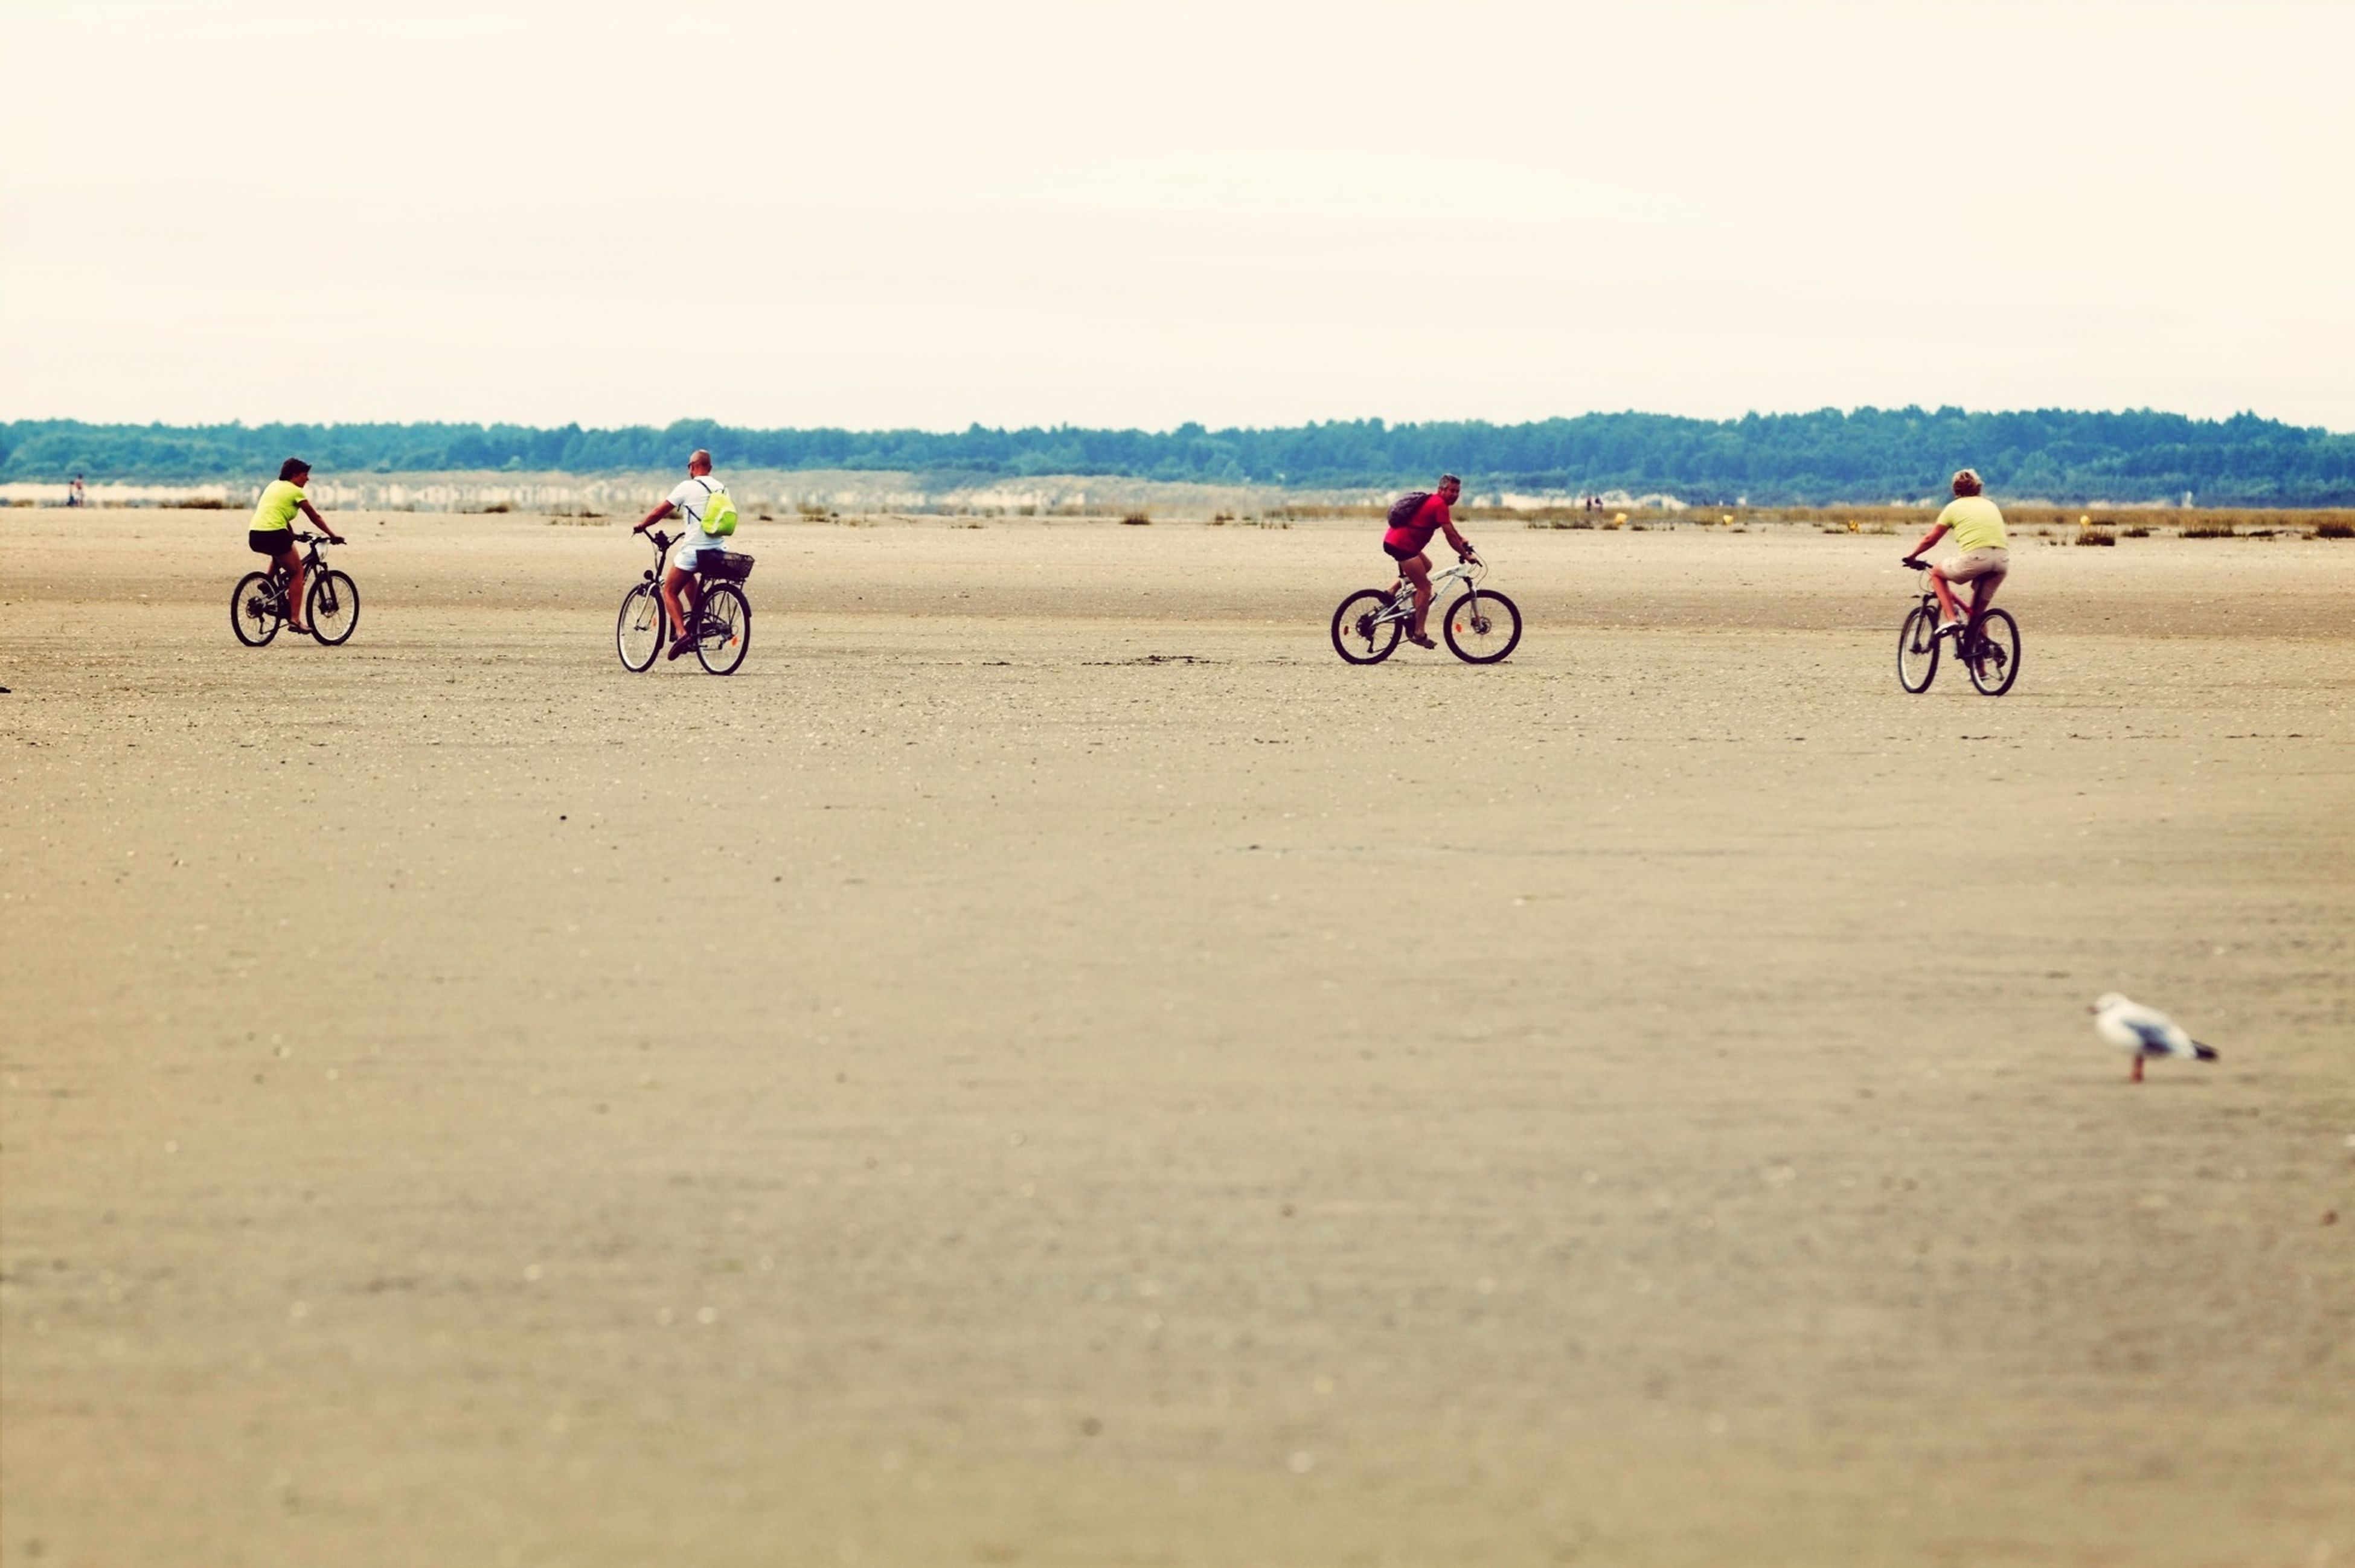 bicycle, transportation, mode of transport, land vehicle, riding, men, lifestyles, leisure activity, clear sky, copy space, sand, cycling, beach, stationary, motorcycle, travel, parked, person, day